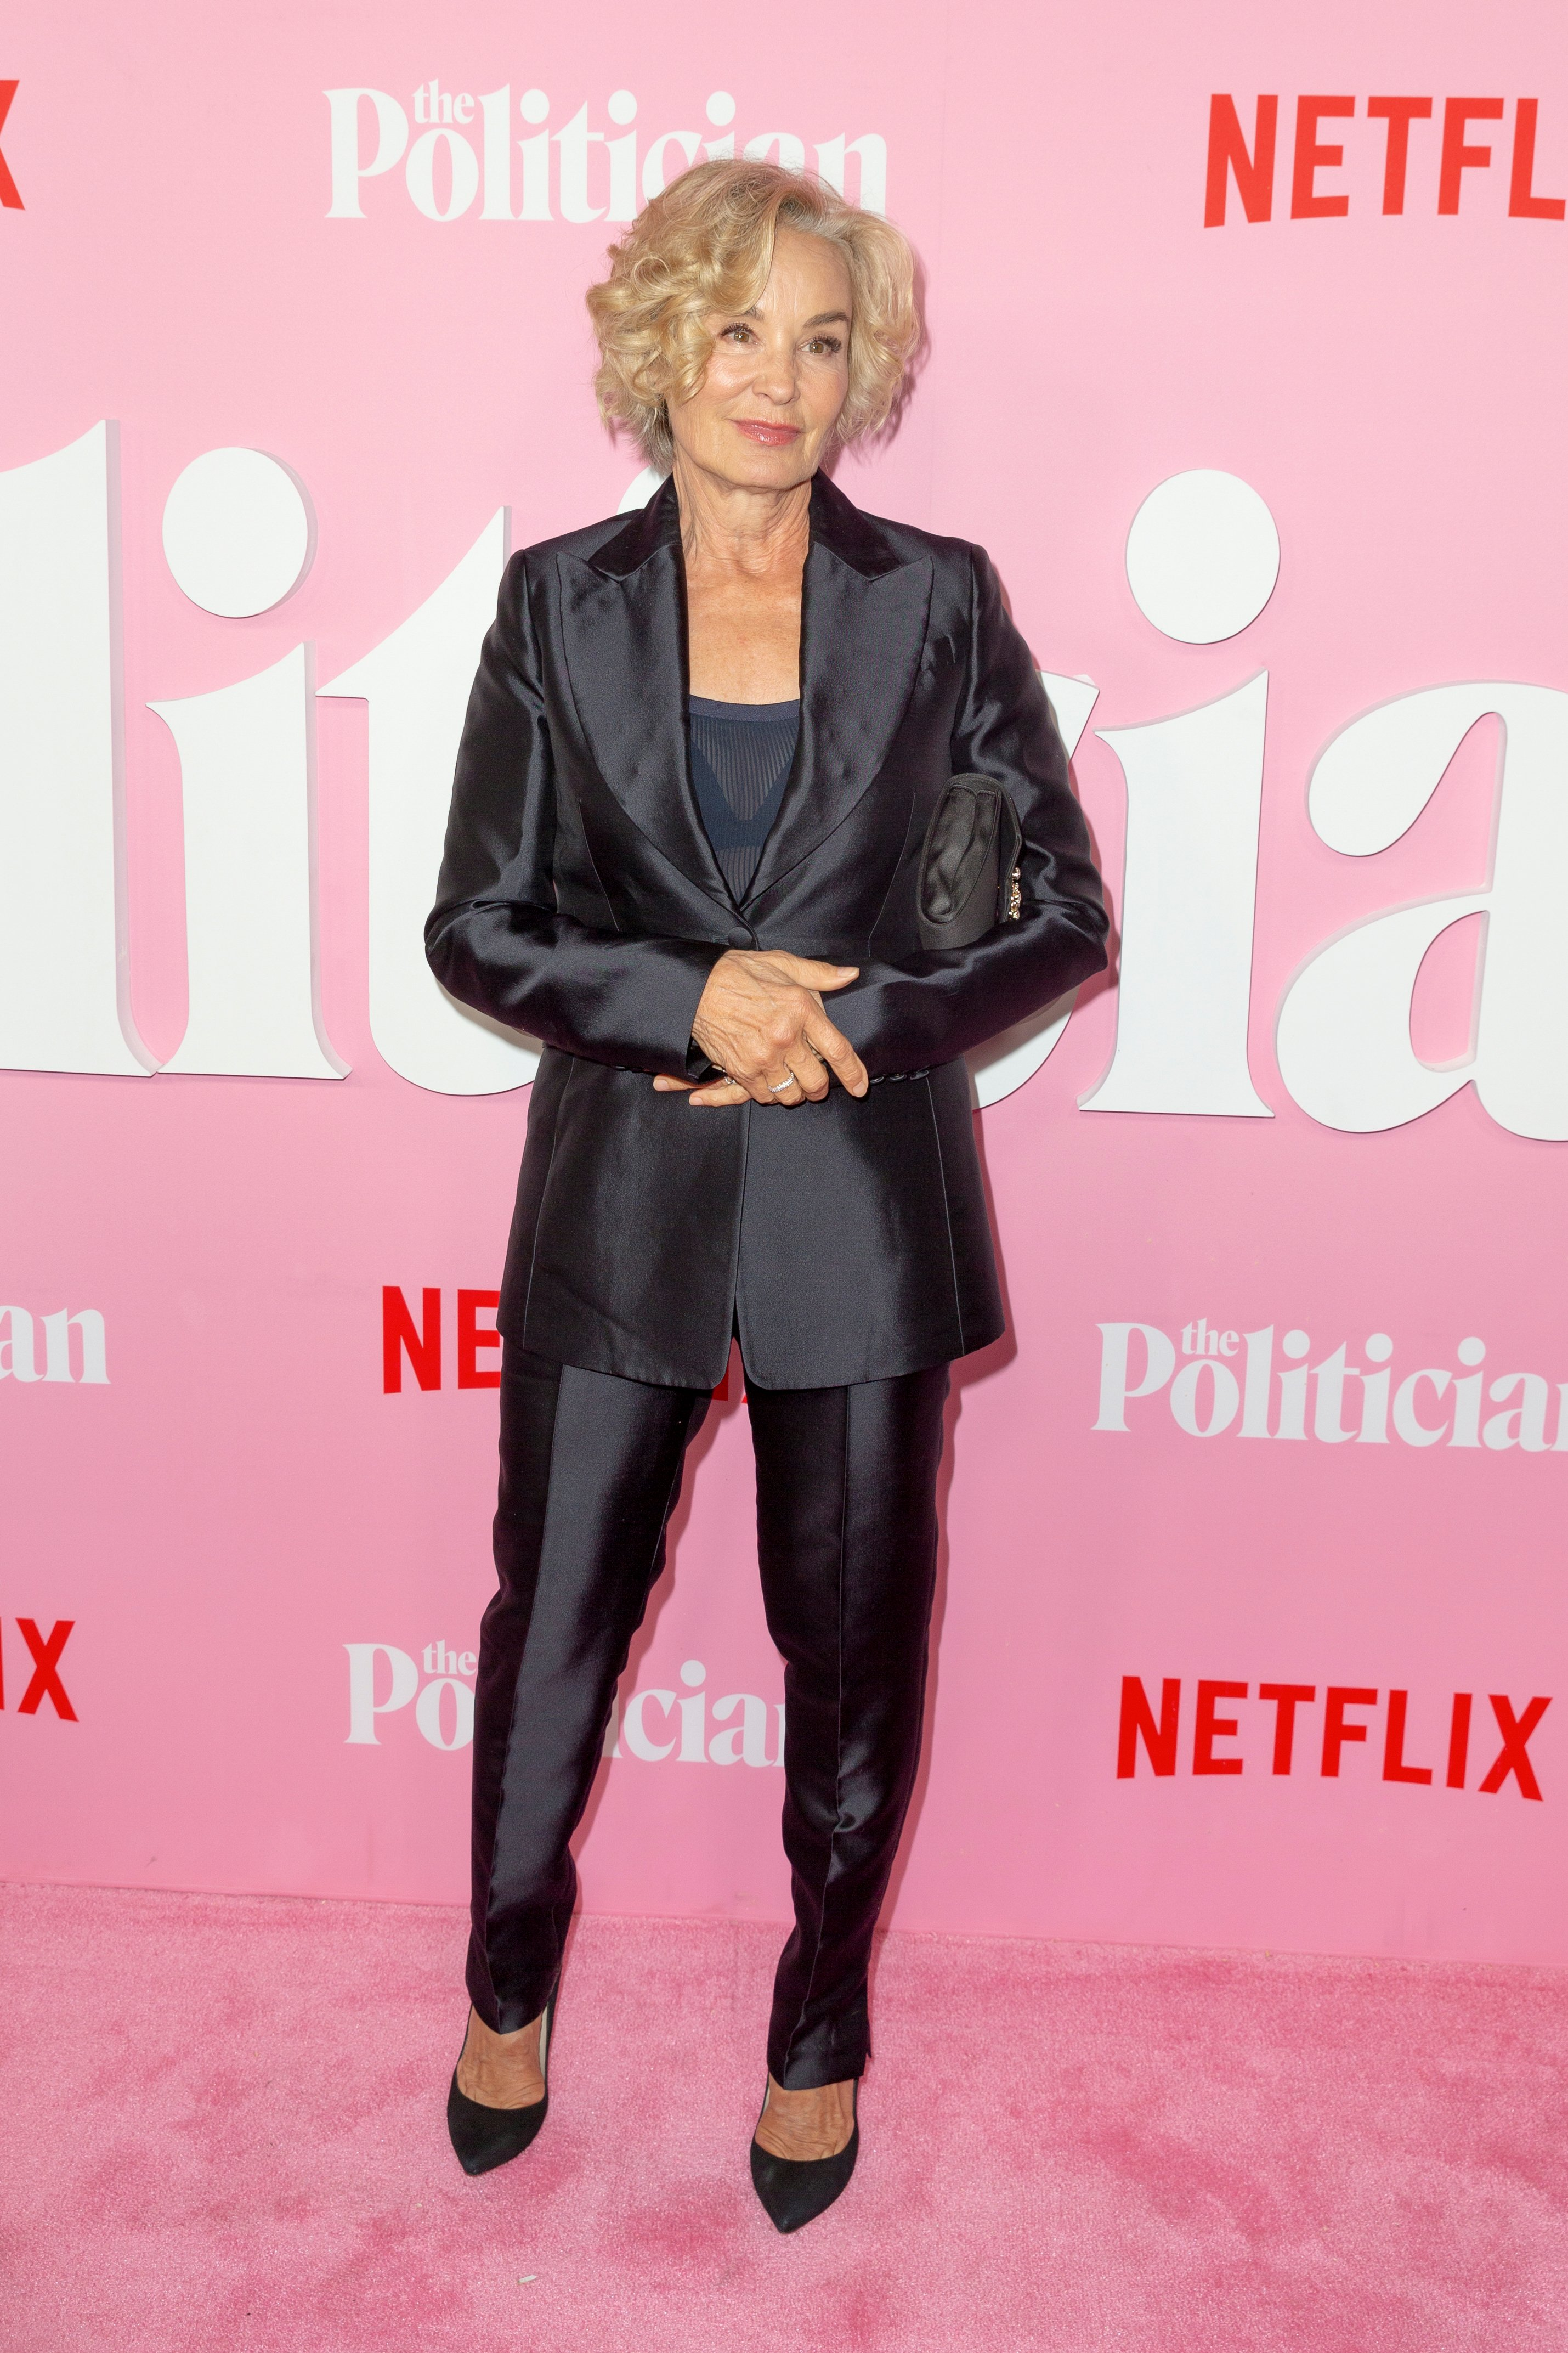 """Actress Jessica Lange attends the premiere of """"The Politician"""" at DGA Theater on September 26, 2019 in New York City   Photo: Shutterstock"""